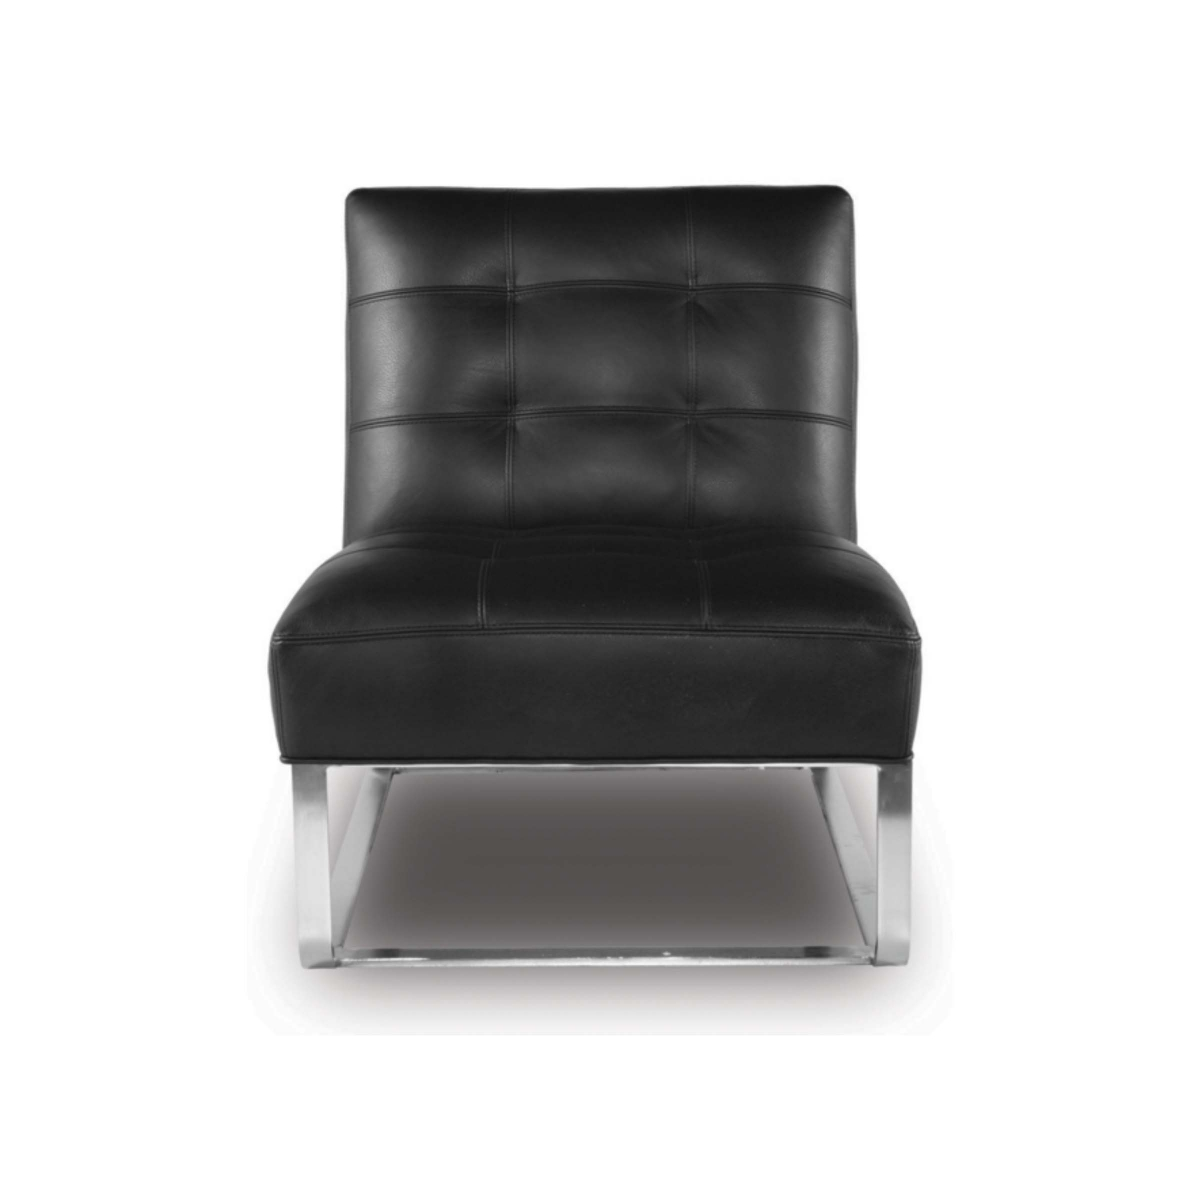 LOUNGE - 1E accent Chair LaRoyale Onyx